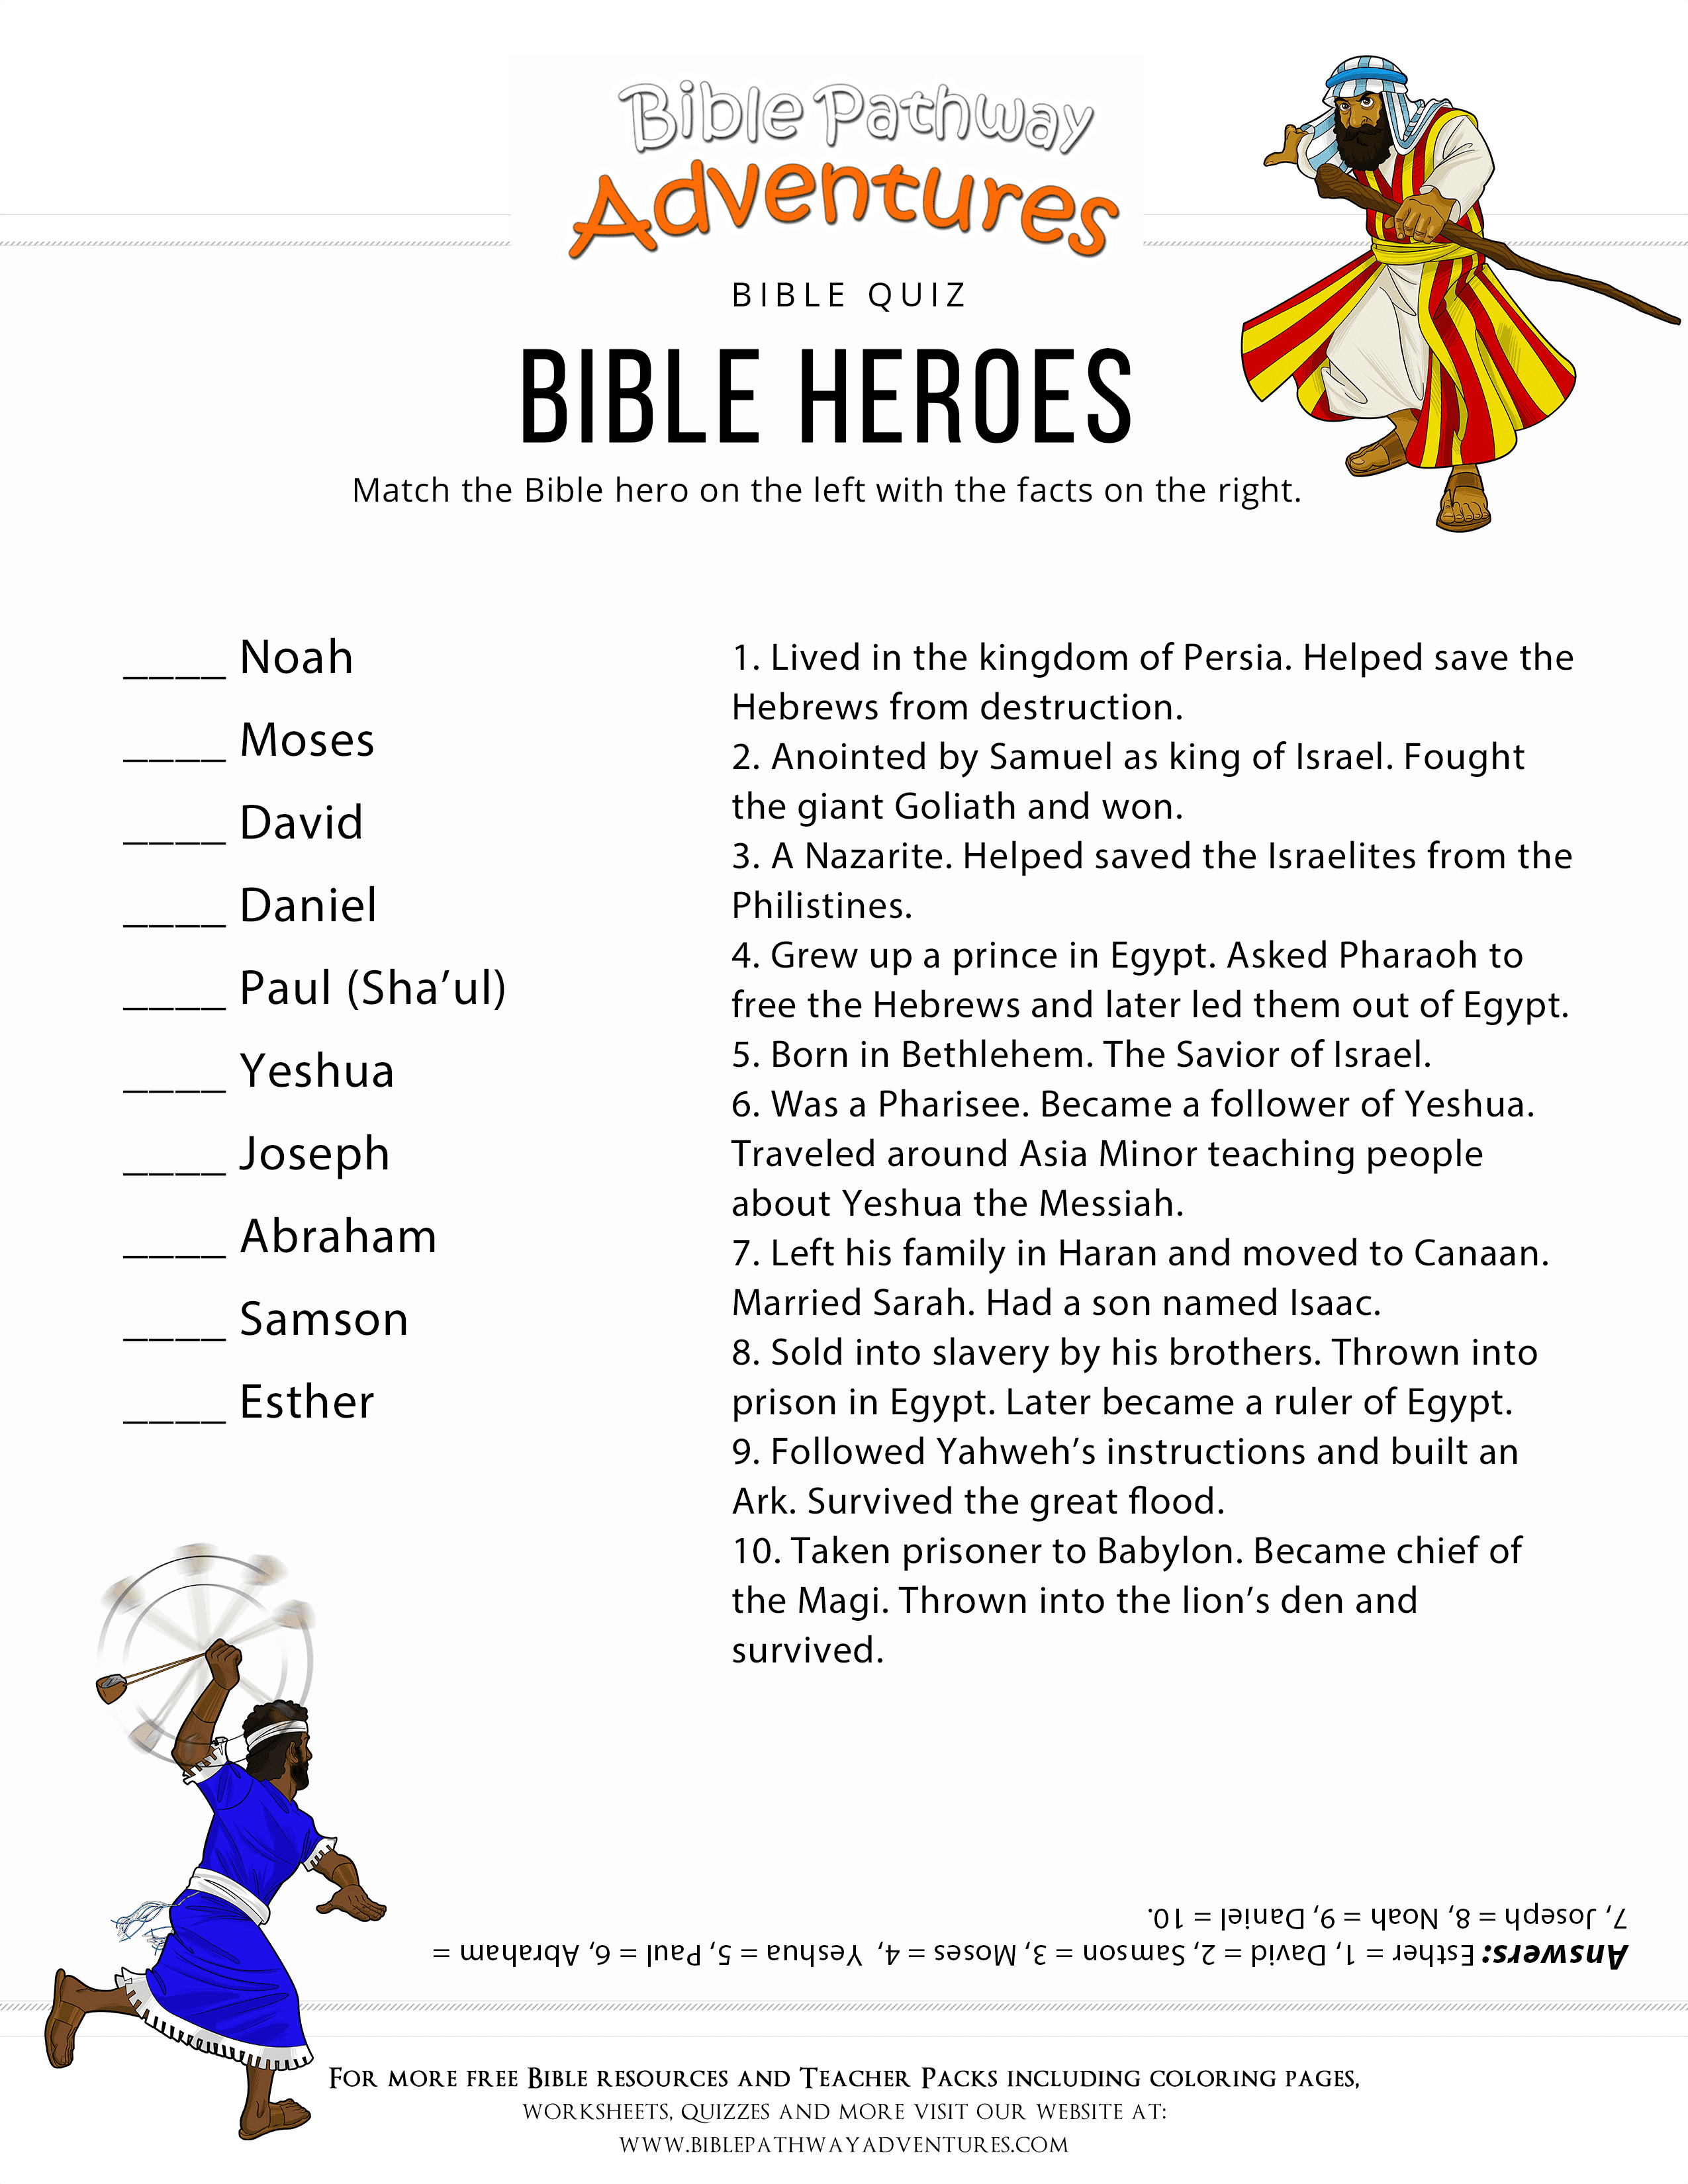 Printable Bible Trivia Questions That Are Exceptional